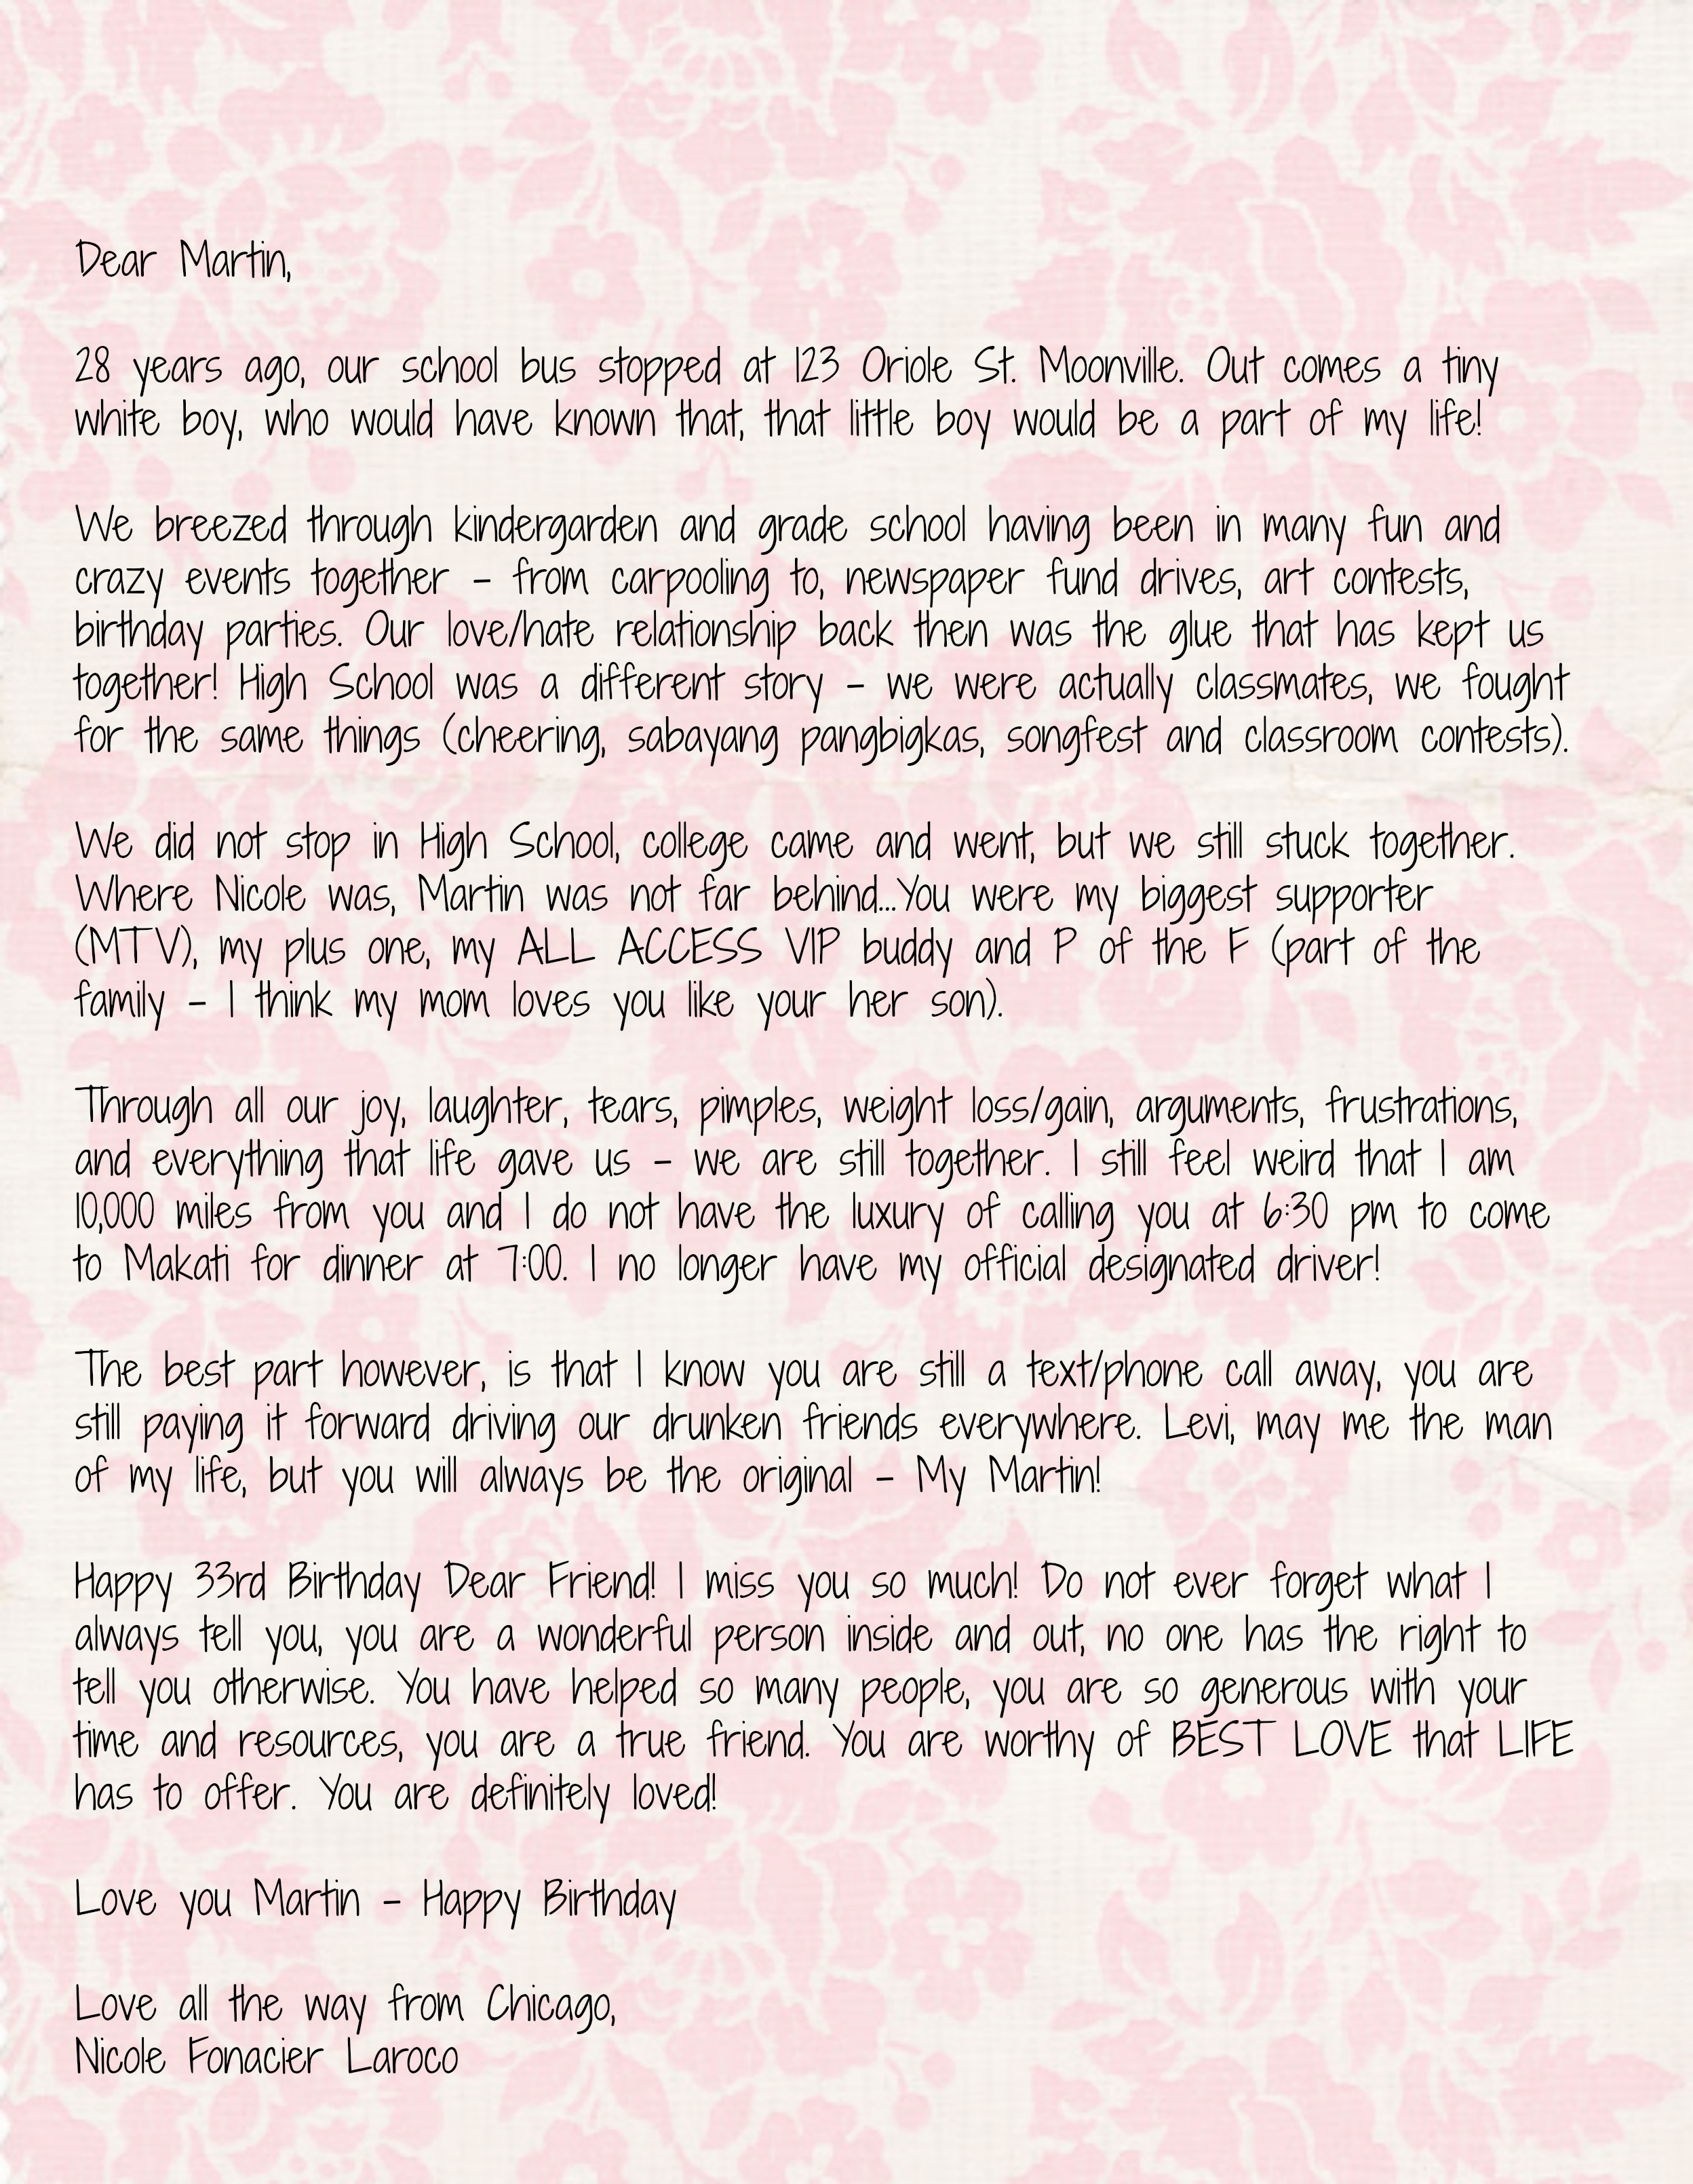 happy birthday love letter ; happy-birthday-mom-letter-best-of-happy-birthday-love-letter-for-her-birthday-cake-ideas-of-happy-birthday-mom-letter